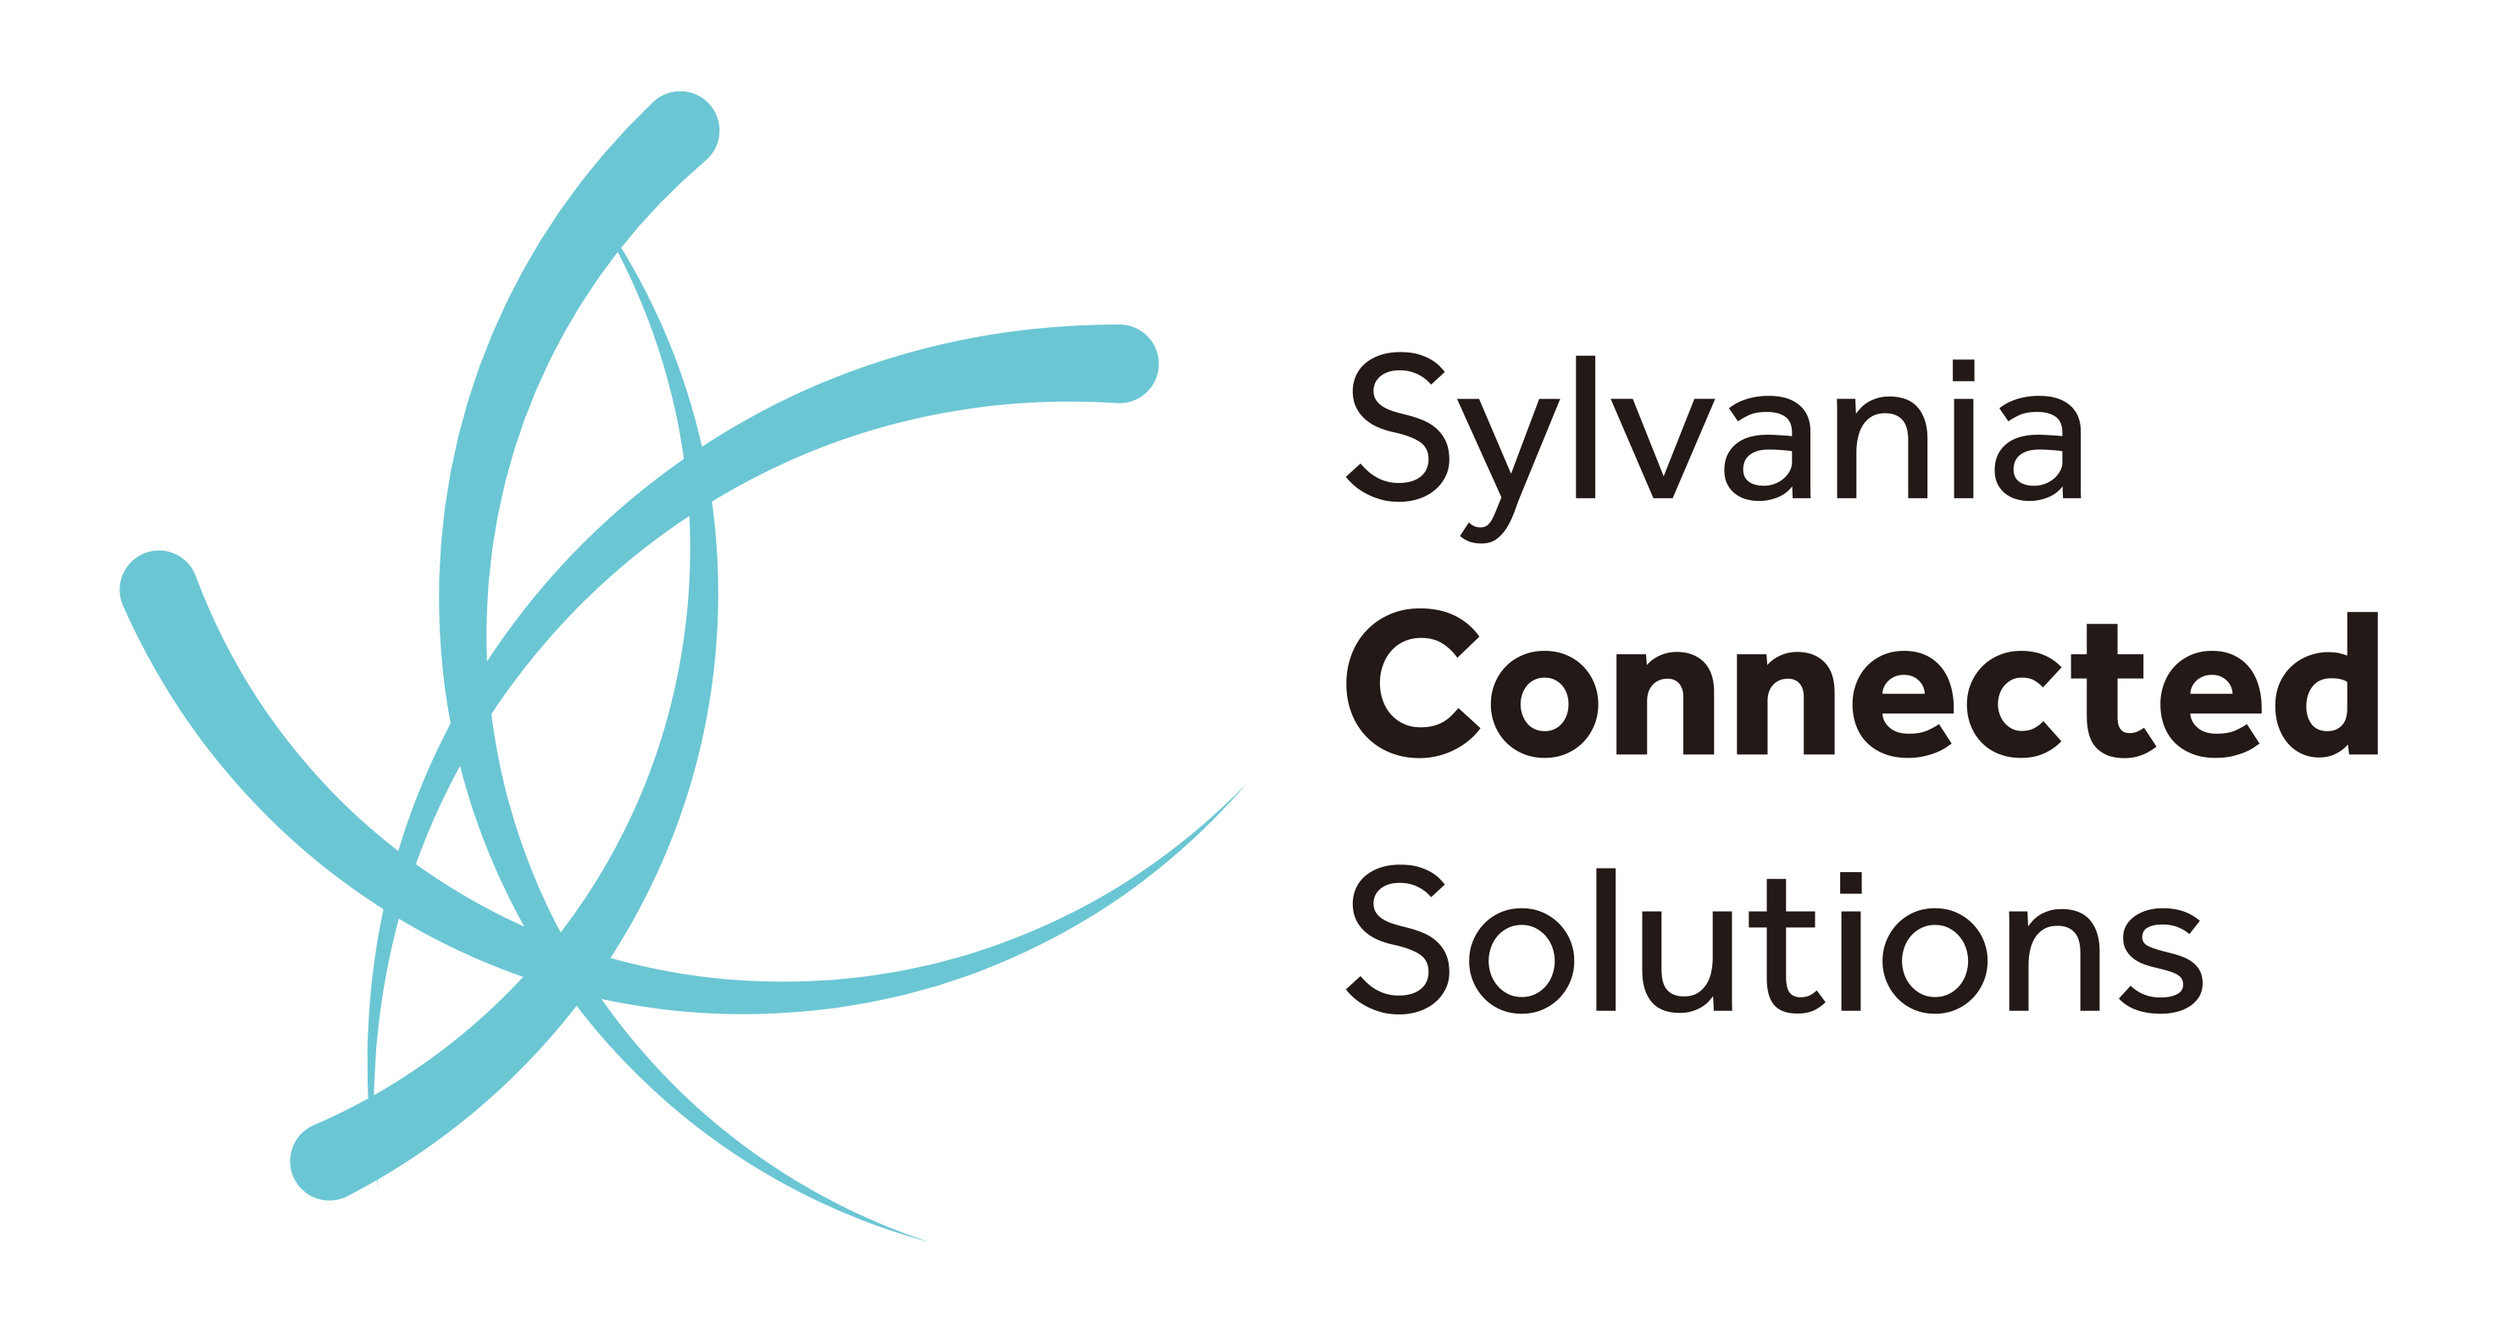 Sylvania_Connected_Solutions_Logo.jpg